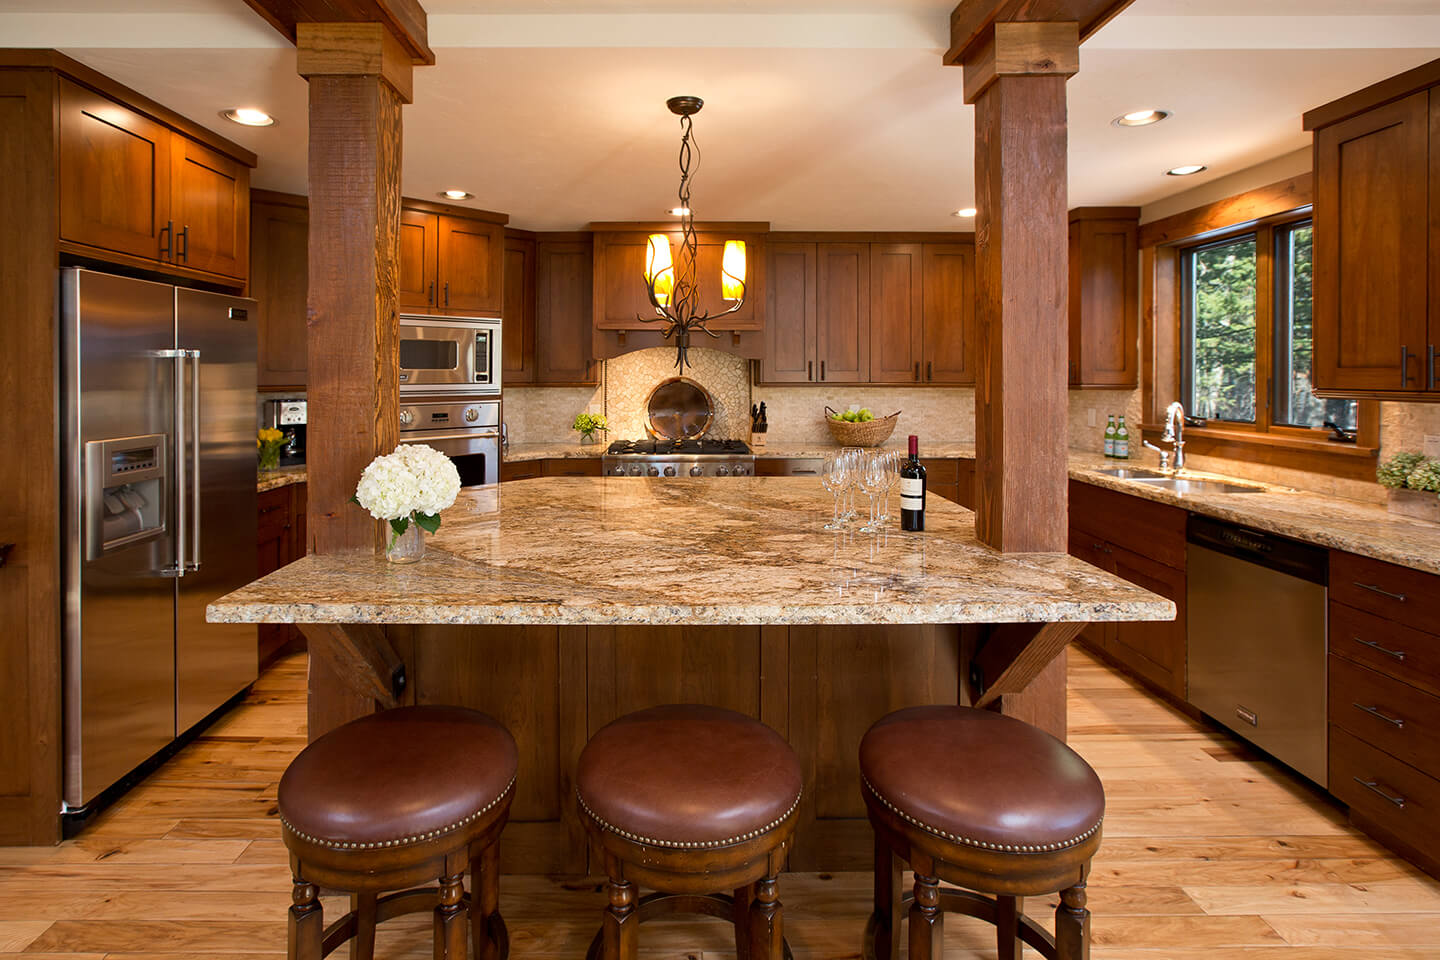 Kitchen with granite counter top and cherry wood cabinetry